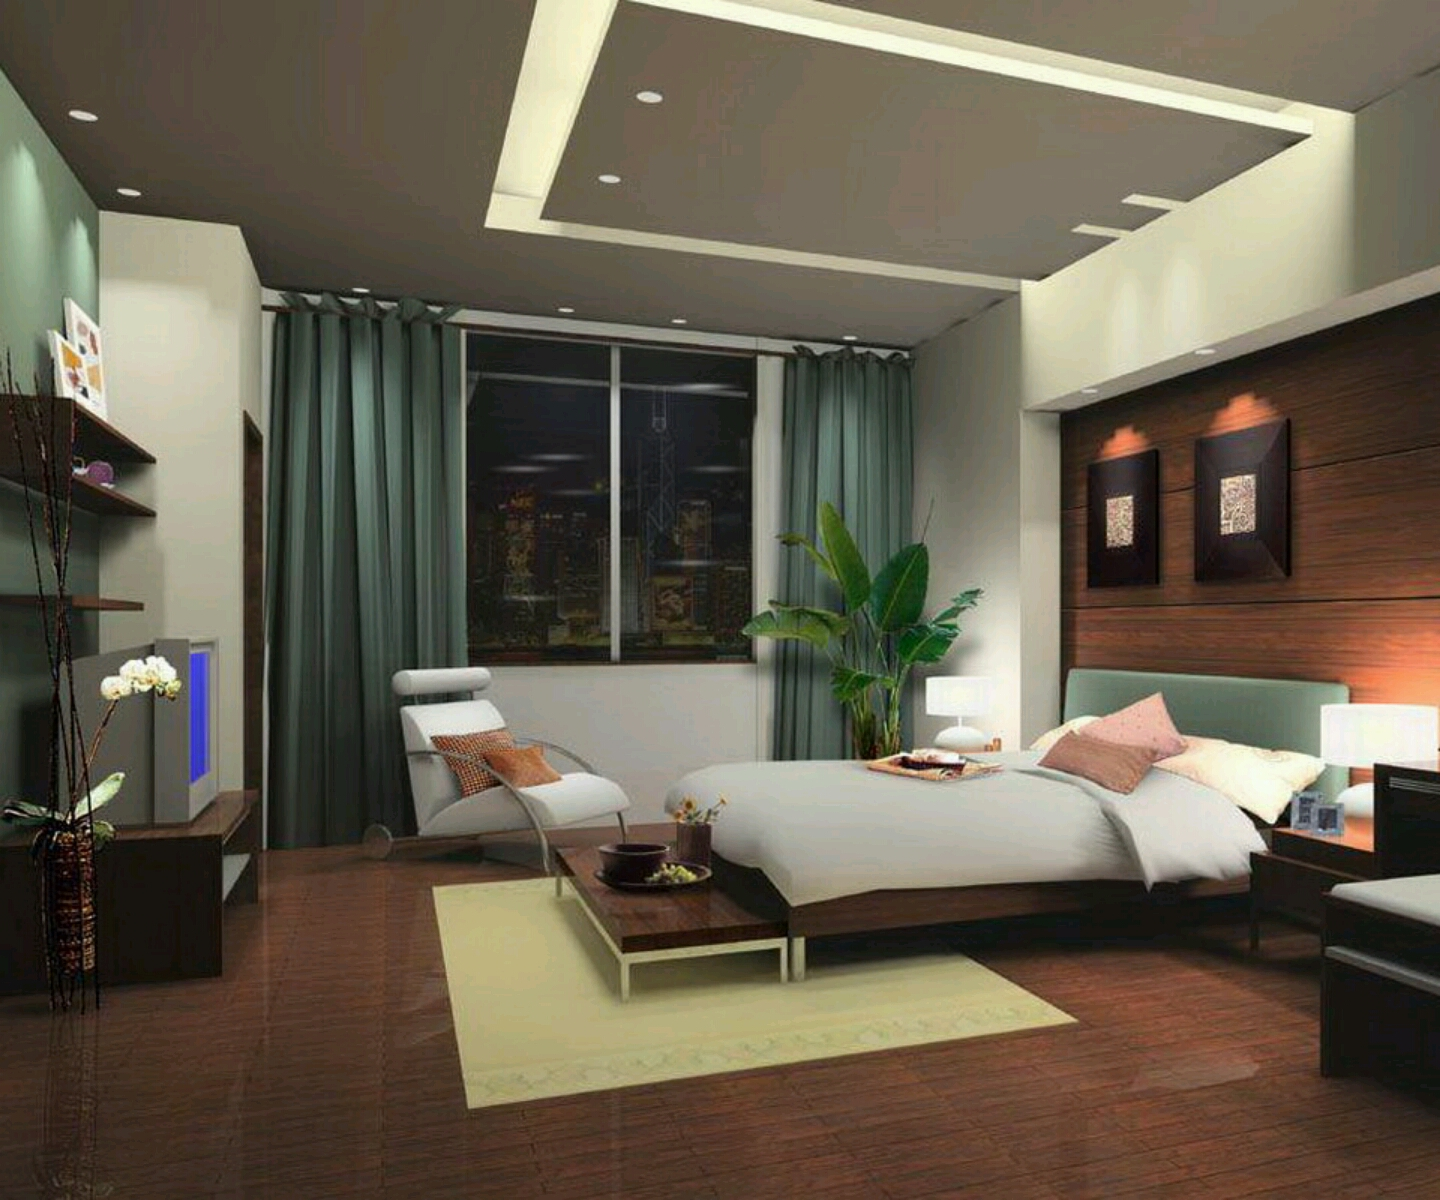 Contemporary Bedroom Design Ideas bedroom design bedroom interior design small modern ideas – my blog